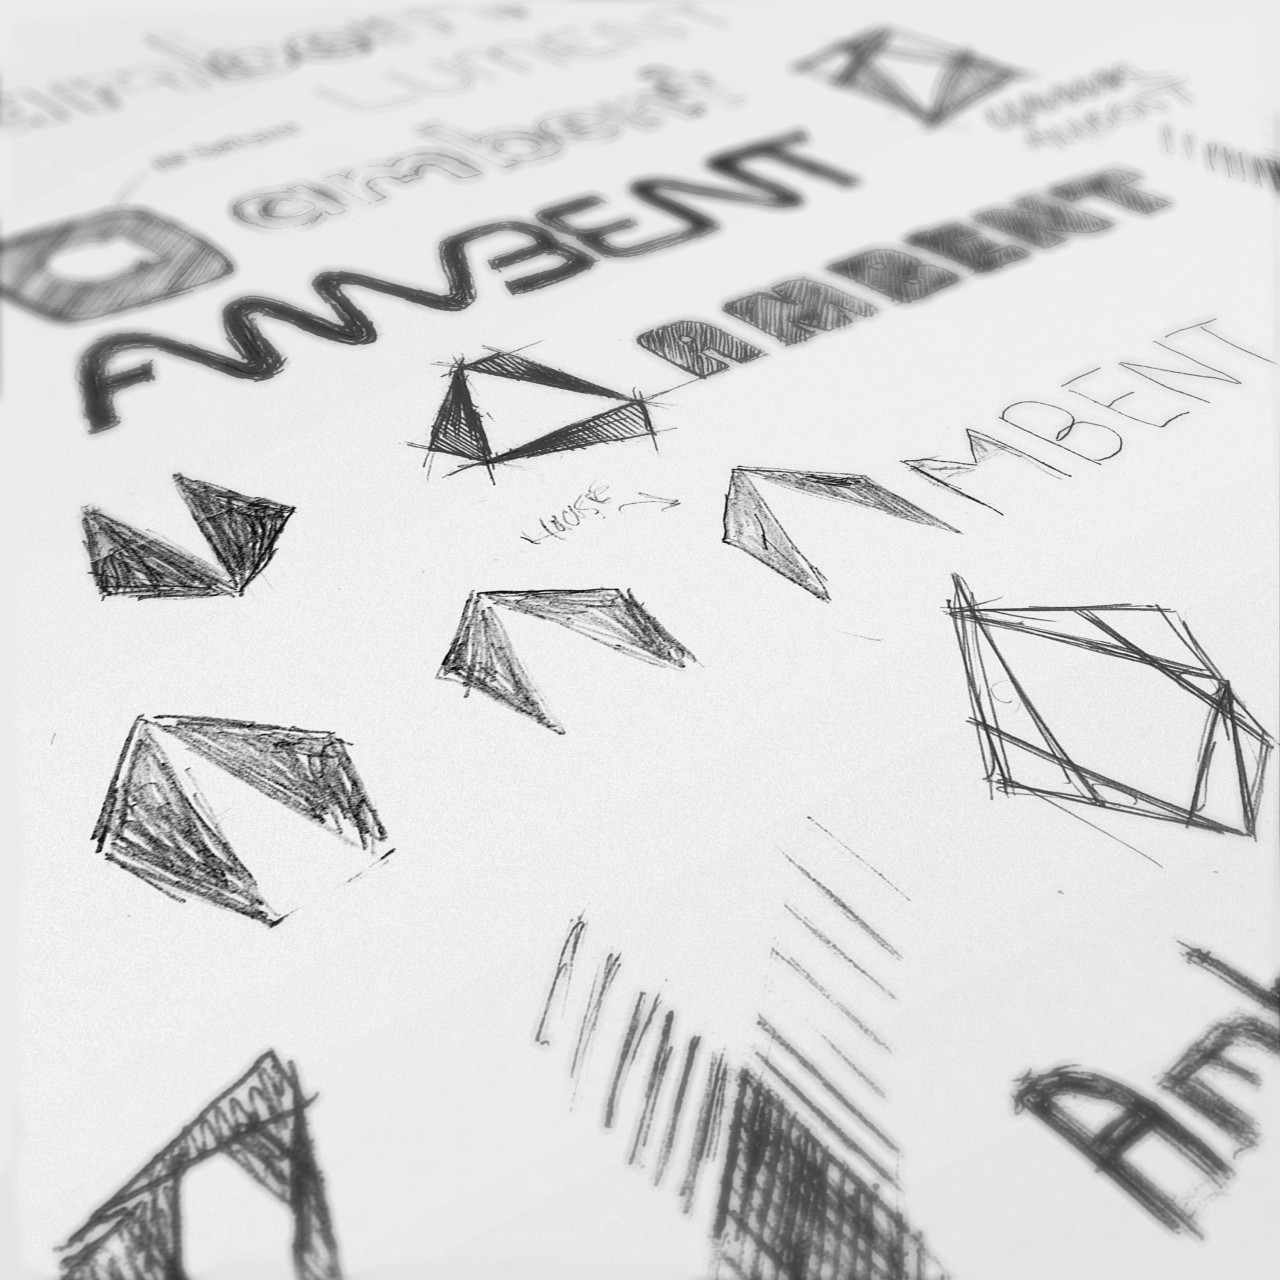 Image of Lument Lighting logo process sketches